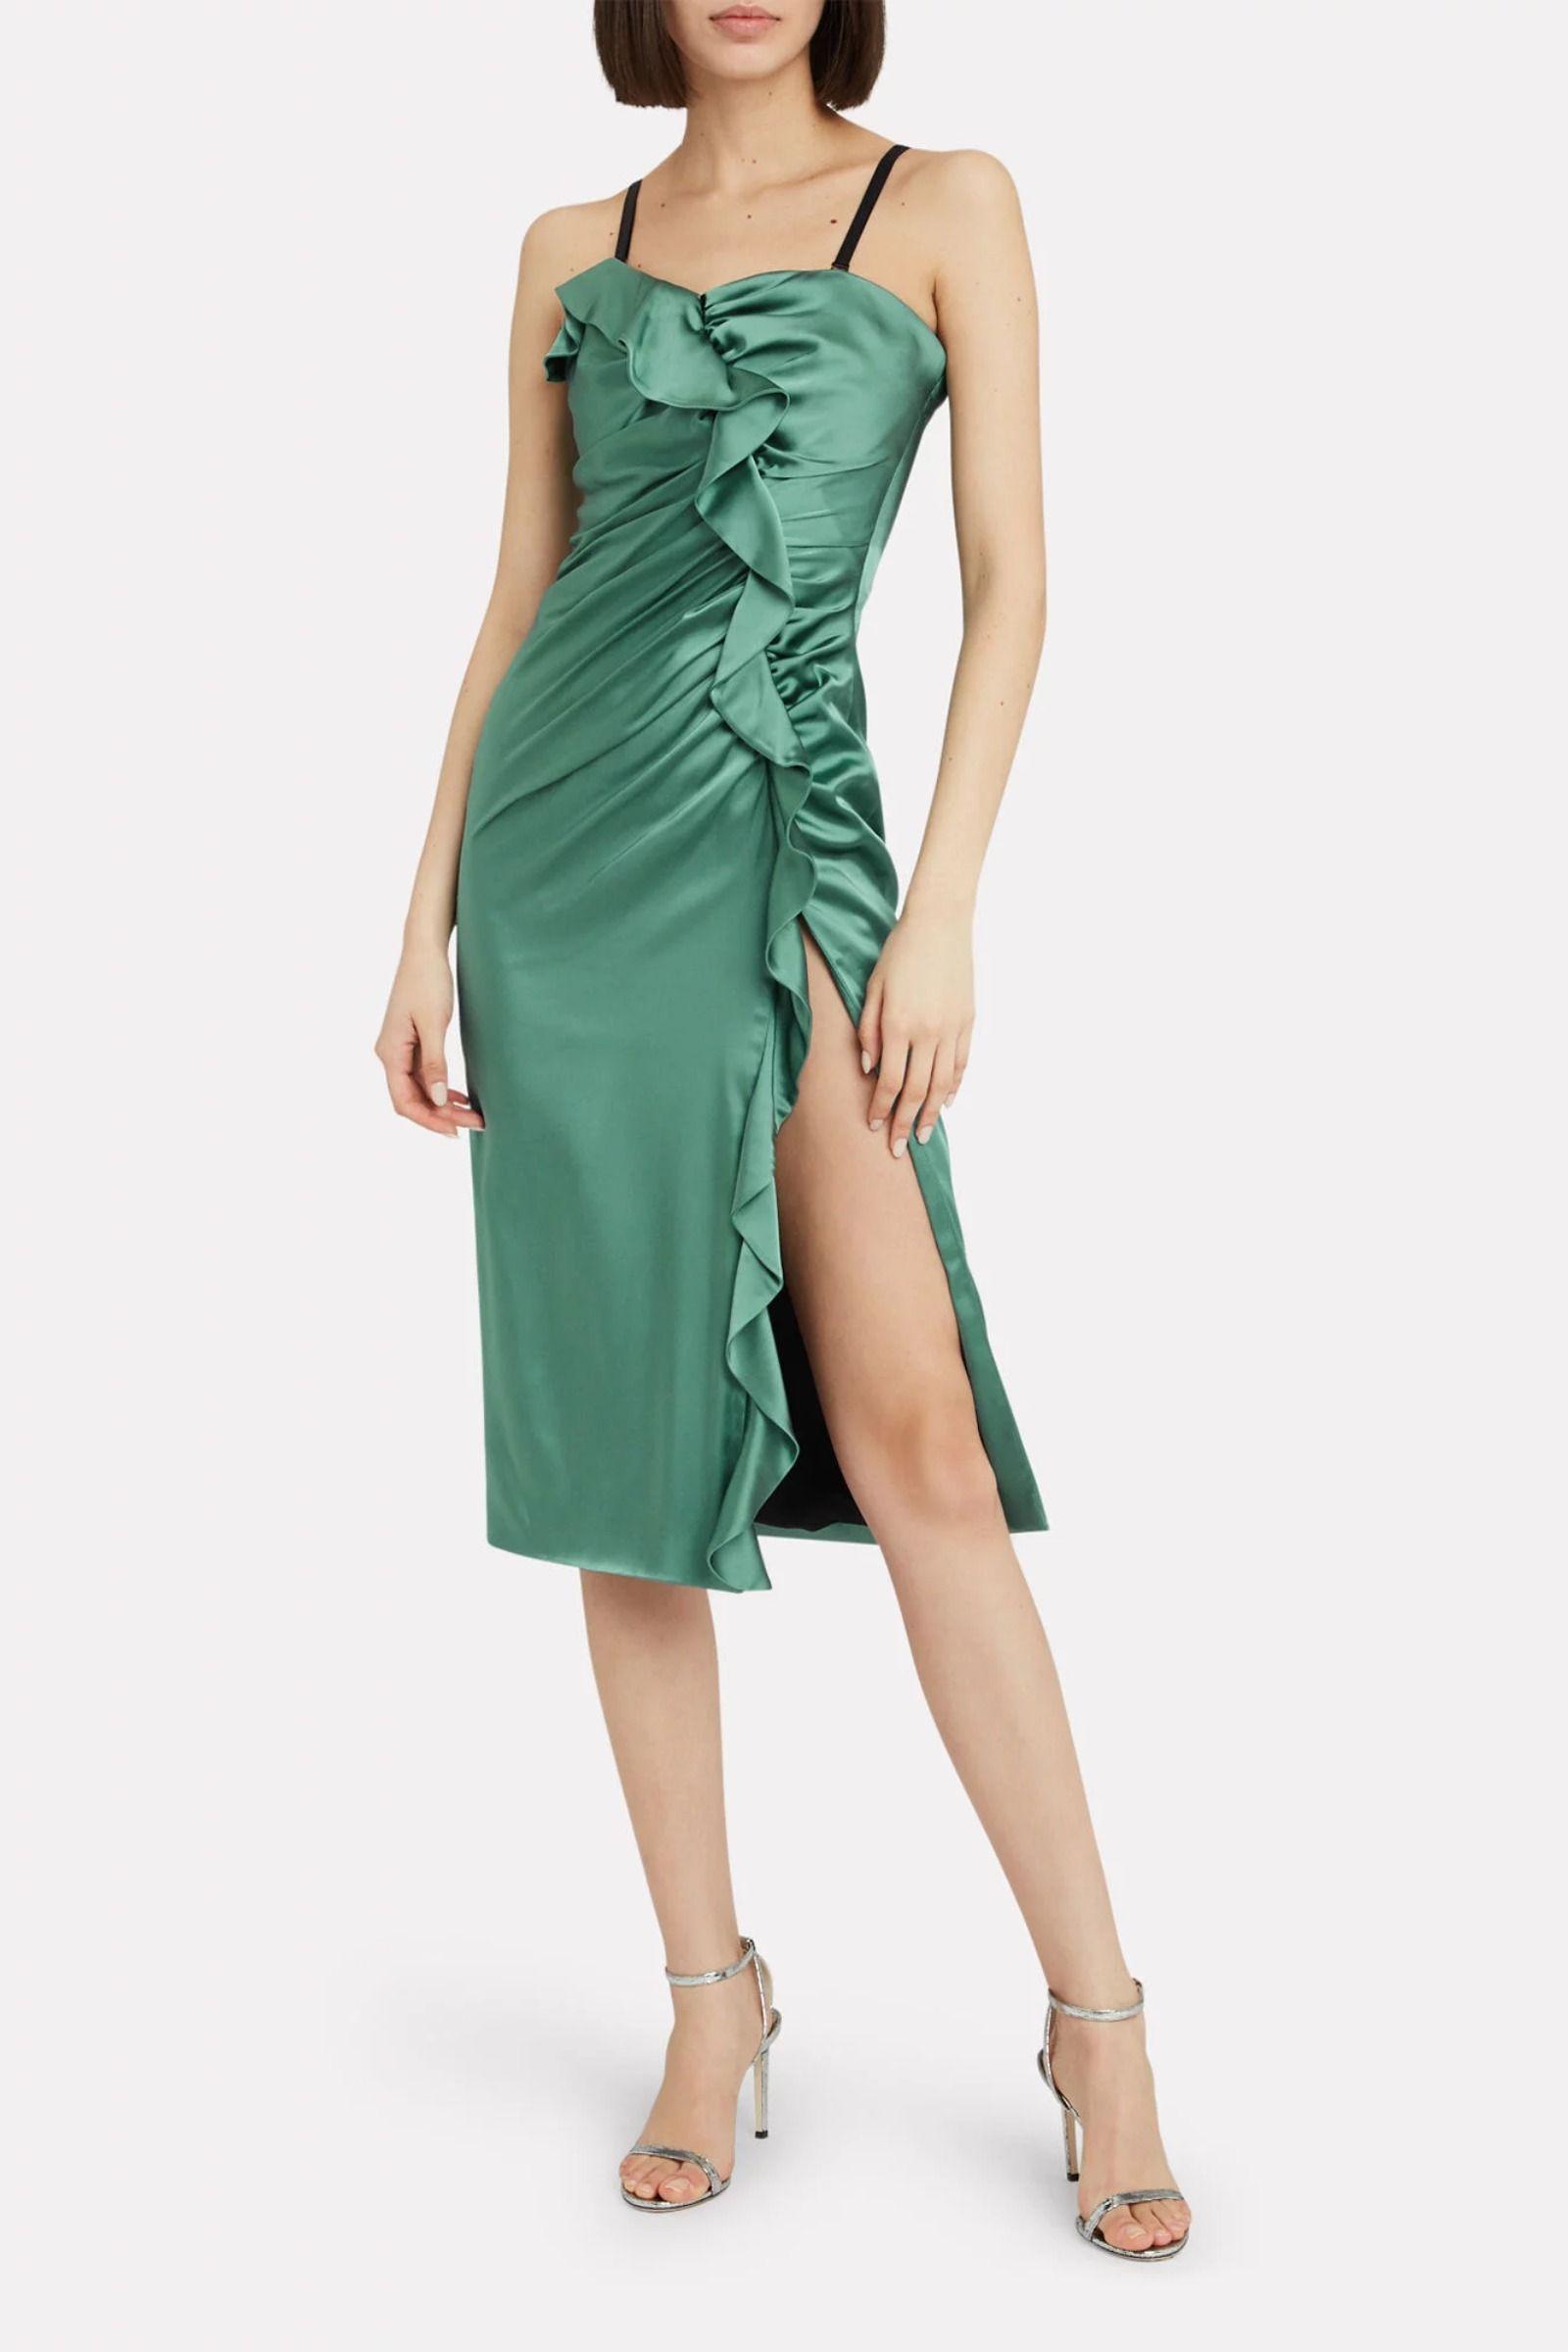 Pin By Fashion Beauty Trends And Women S Health On Designer Fashion Sales Bustier Dress Dresses Fashion